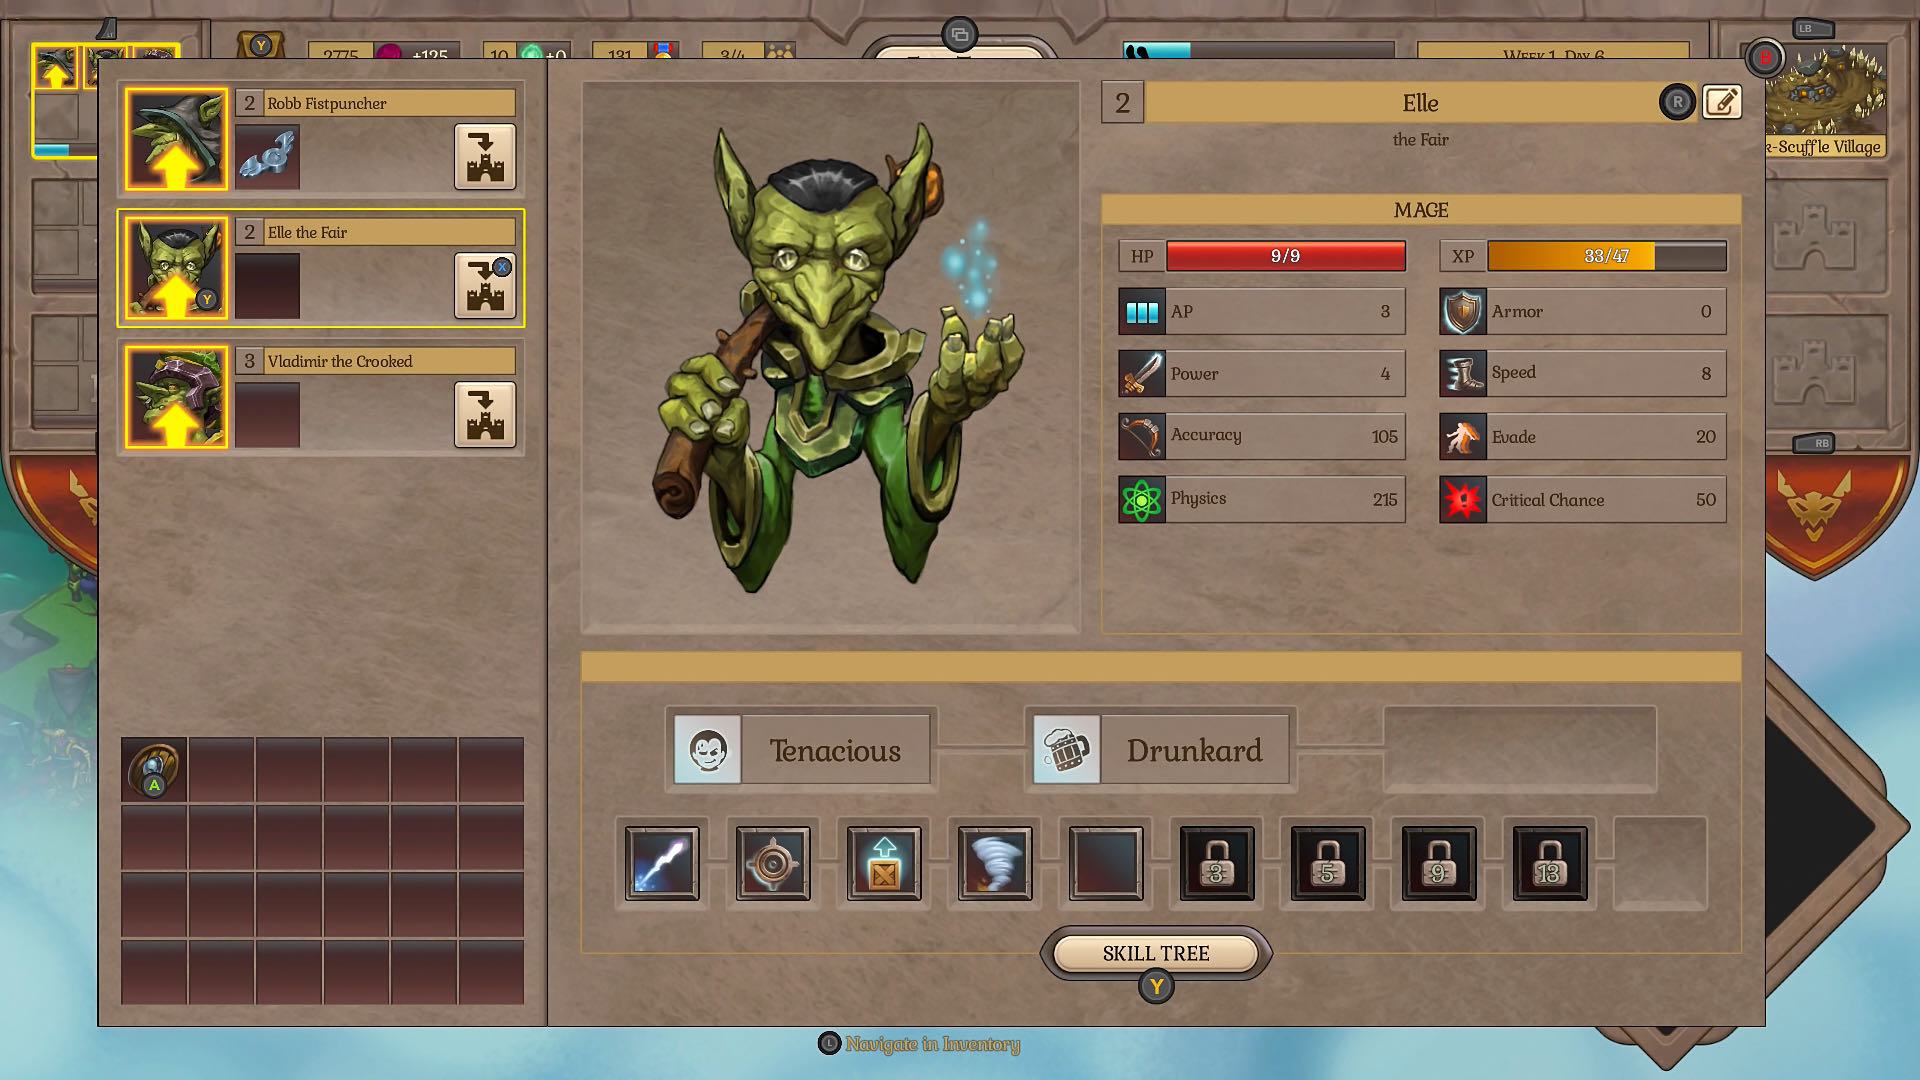 A menu screenshot from Fort Triumph, showing stats and upgrade options for a goblin magician-type character.